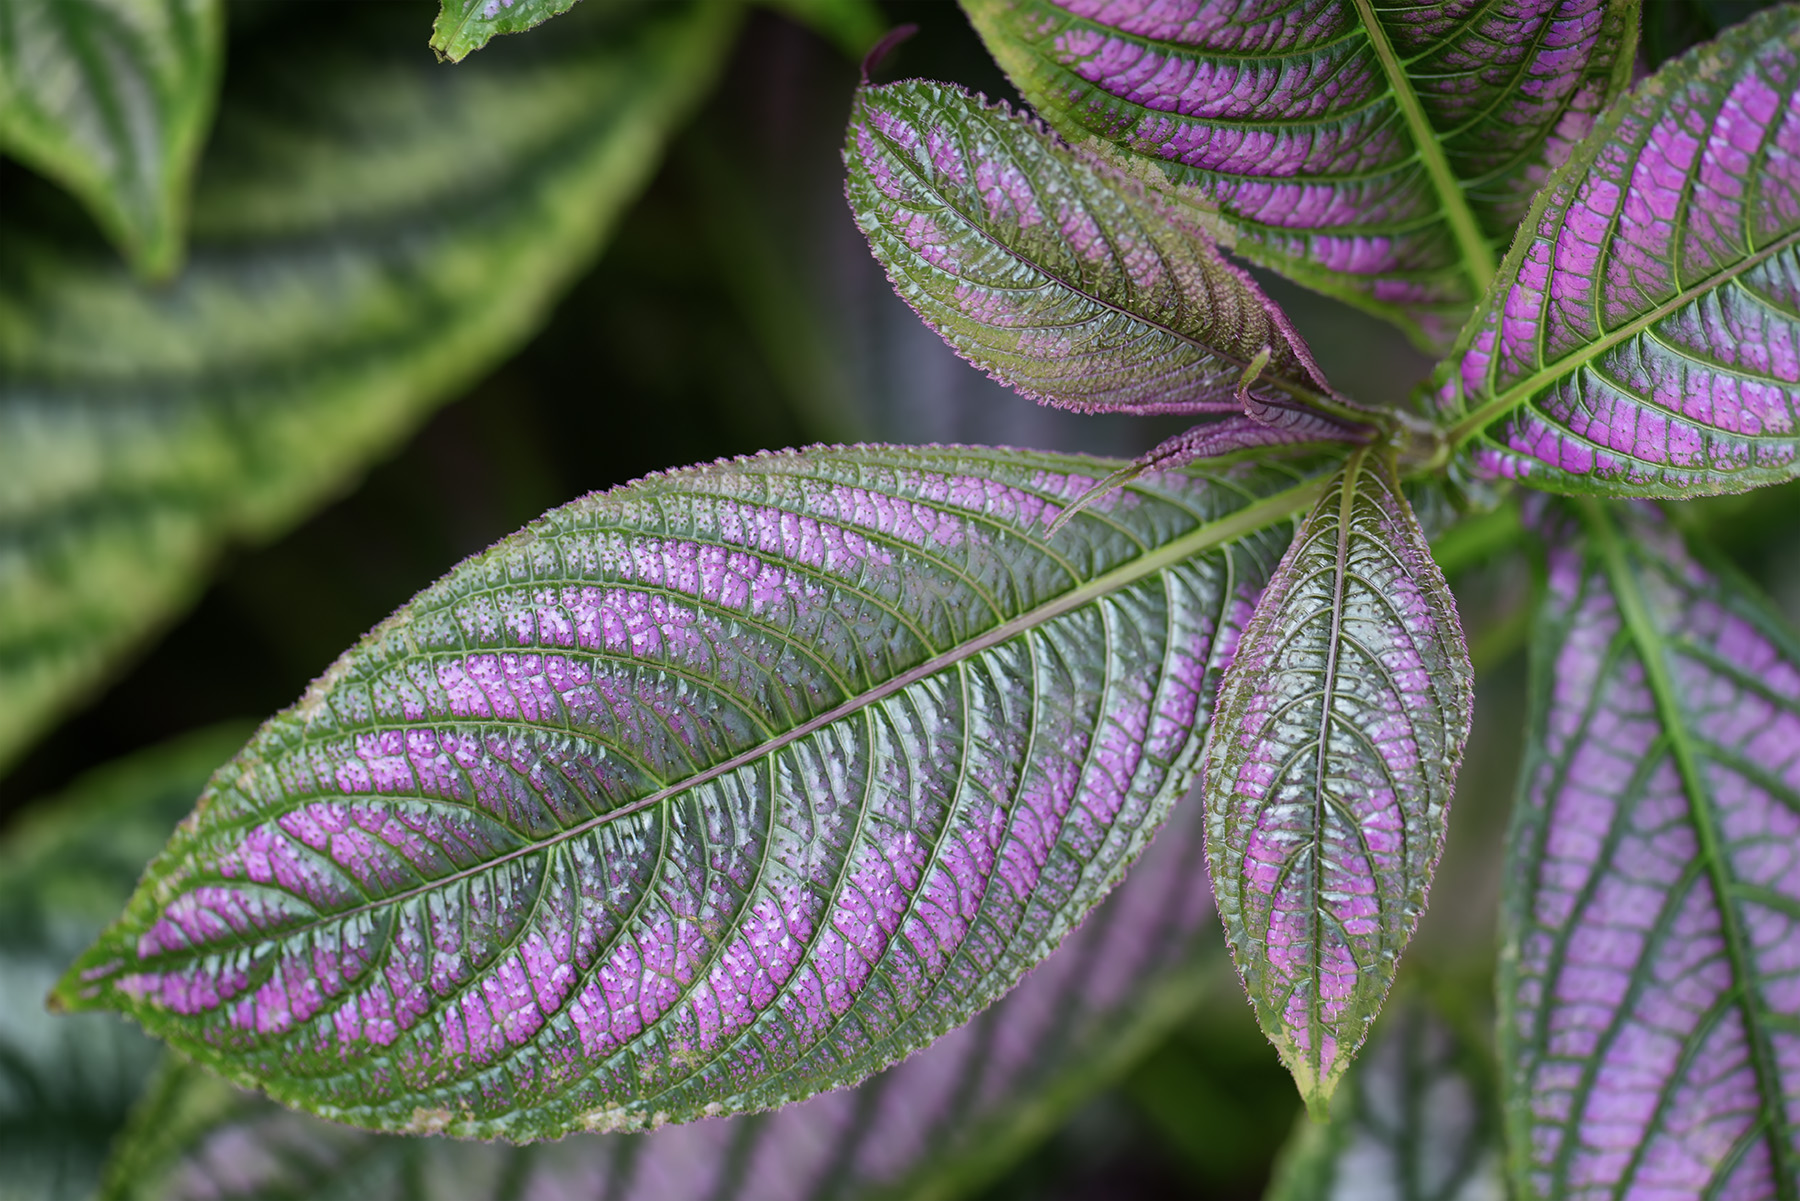 Photo: A touch of color  Why this shot? I was fascinated by the tinge of purple along the edge of the leaves, it was pretty.. and that's all :)  #flora  #nature  #japan